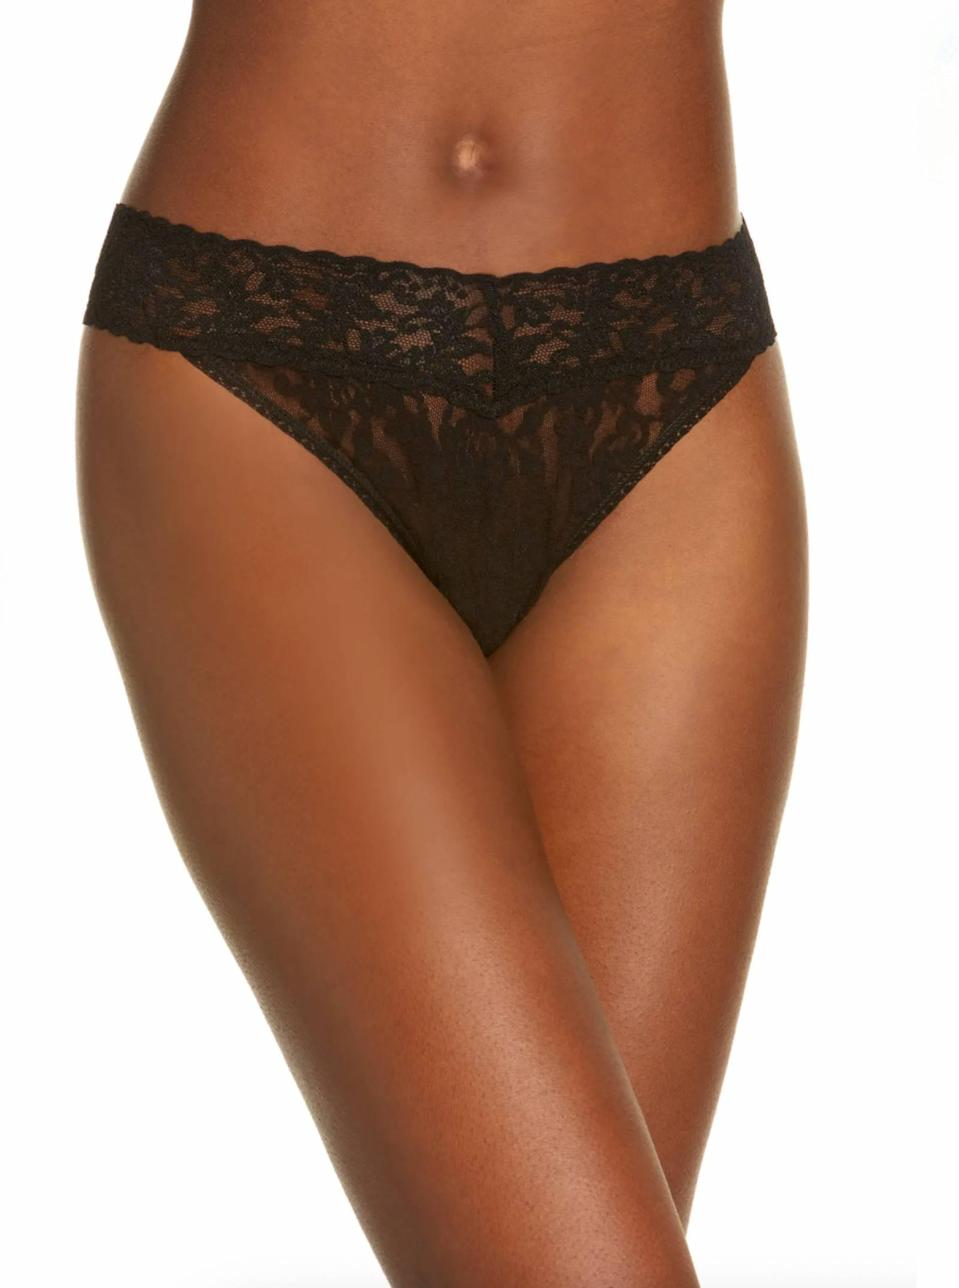 """There's a reason why people consistently rave about <a href=""""https://www.glamour.com/story/hanky-panky-high-waisted-retro-thong-review?mbid=synd_yahoo_rss"""" rel=""""nofollow noopener"""" target=""""_blank"""" data-ylk=""""slk:Hanky Panky's stretch lace thongs"""" class=""""link rapid-noclick-resp"""">Hanky Panky's stretch lace thongs</a>: They're sexy but still practical for wearing under a number of not-so-forgiving bottoms. Best part? They don't lose shape even after many washes. $22, Nordstrom. <a href=""""https://www.nordstrom.com/s/hanky-panky-original-rise-thong/2856431"""" rel=""""nofollow noopener"""" target=""""_blank"""" data-ylk=""""slk:Get it now!"""" class=""""link rapid-noclick-resp"""">Get it now!</a>"""